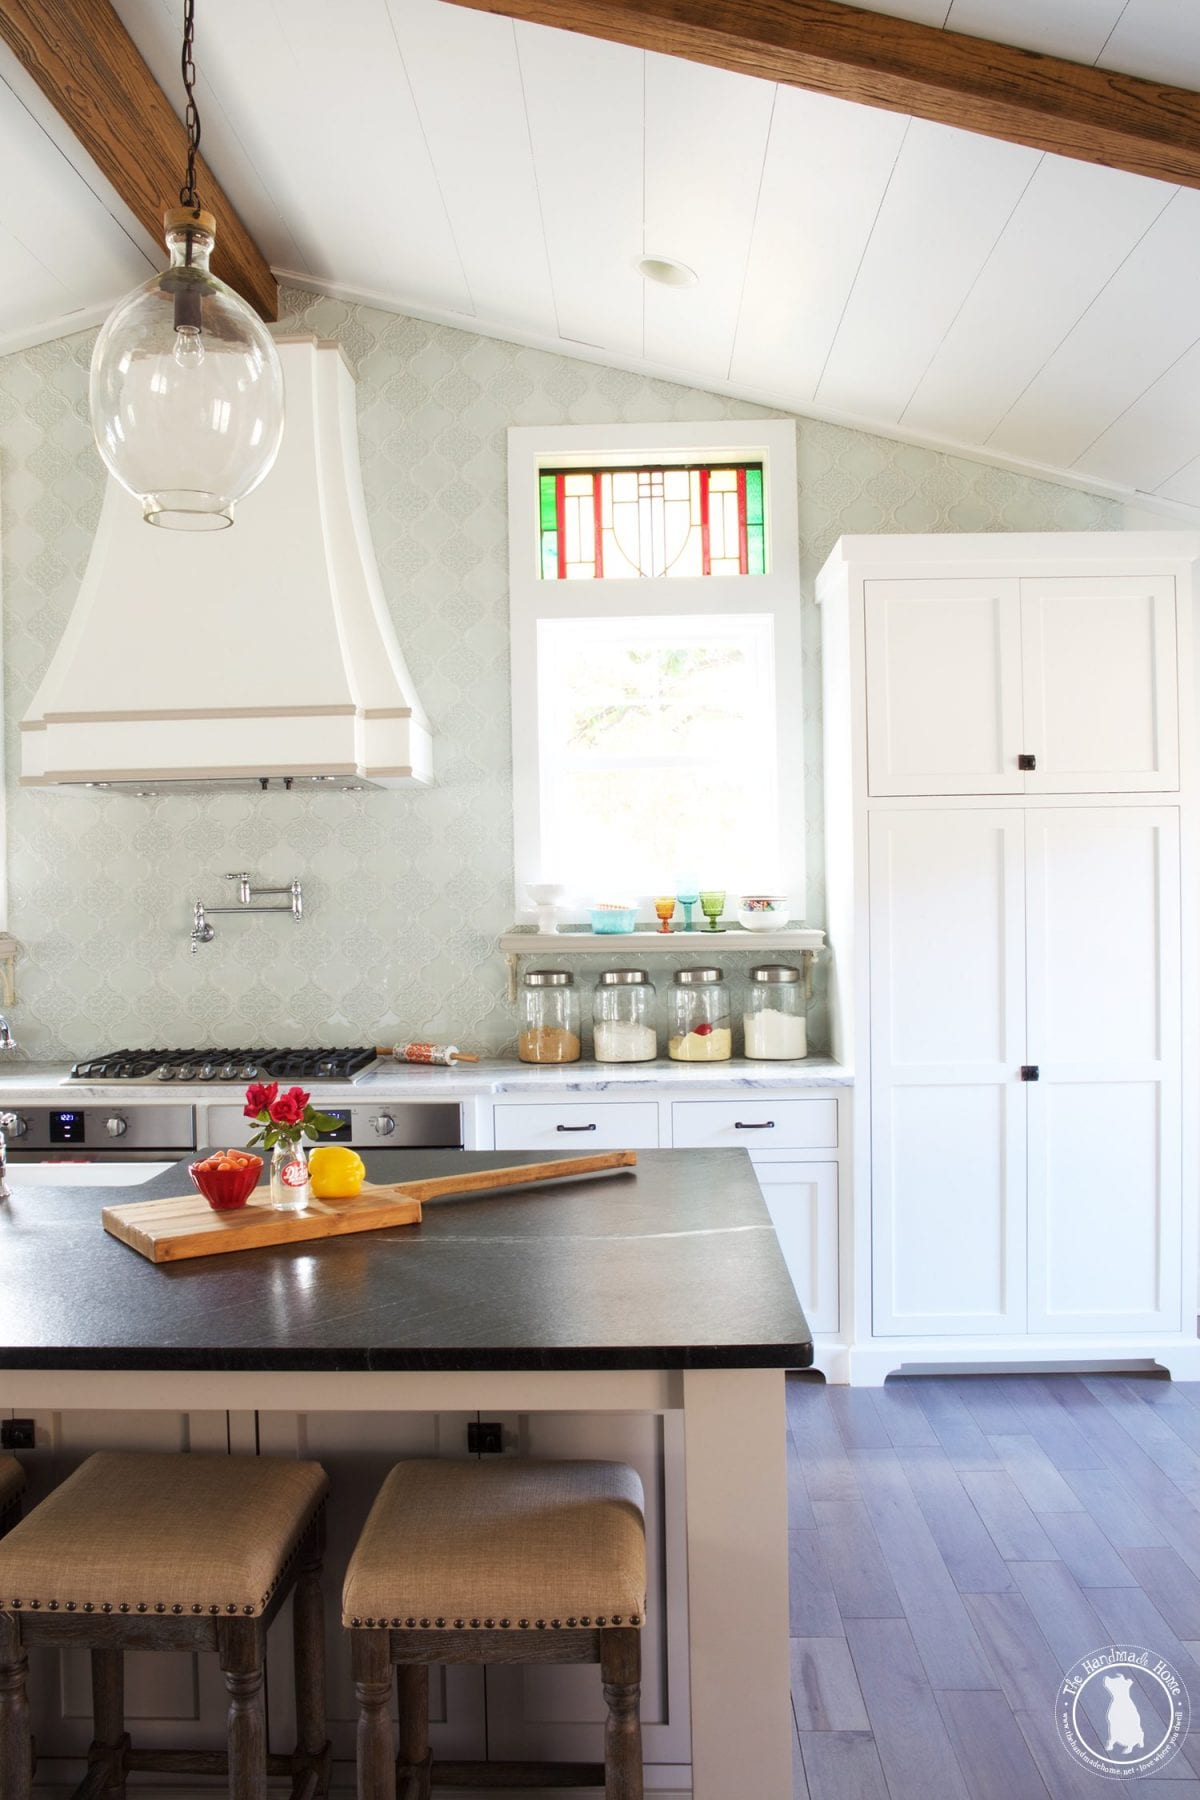 Cool Update We uve been living with our kitchen marble countertops for over six months now and love them Be sure to check out the entire rehabbed area here